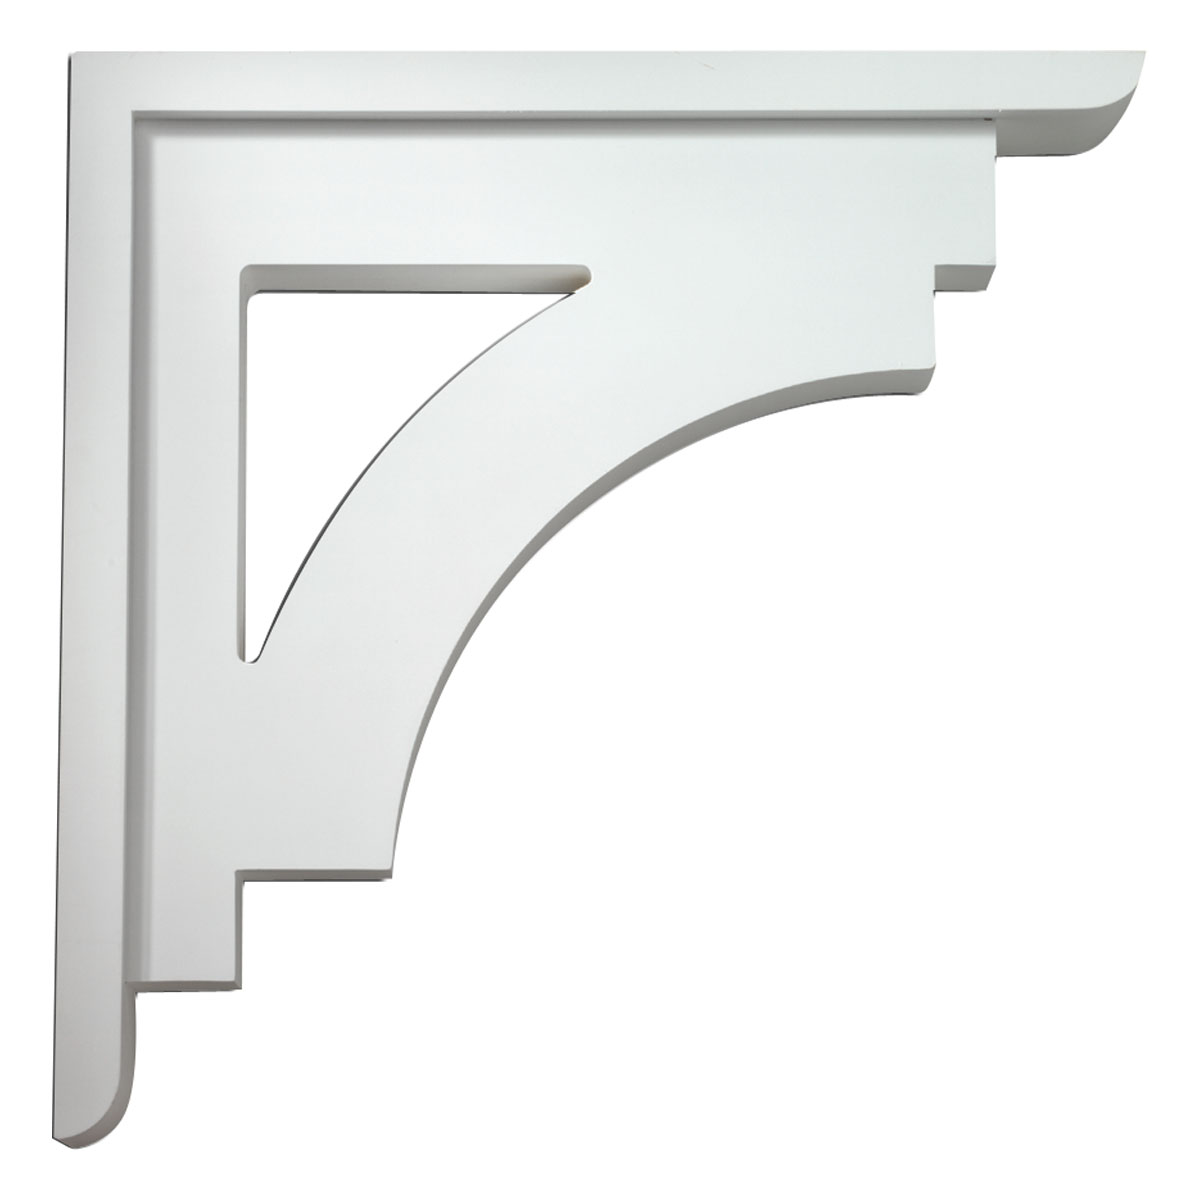 Fypon ltd bkt25x25 4 inch w x 25 inch d x 25 inch h arch b for Architectural corbels and brackets